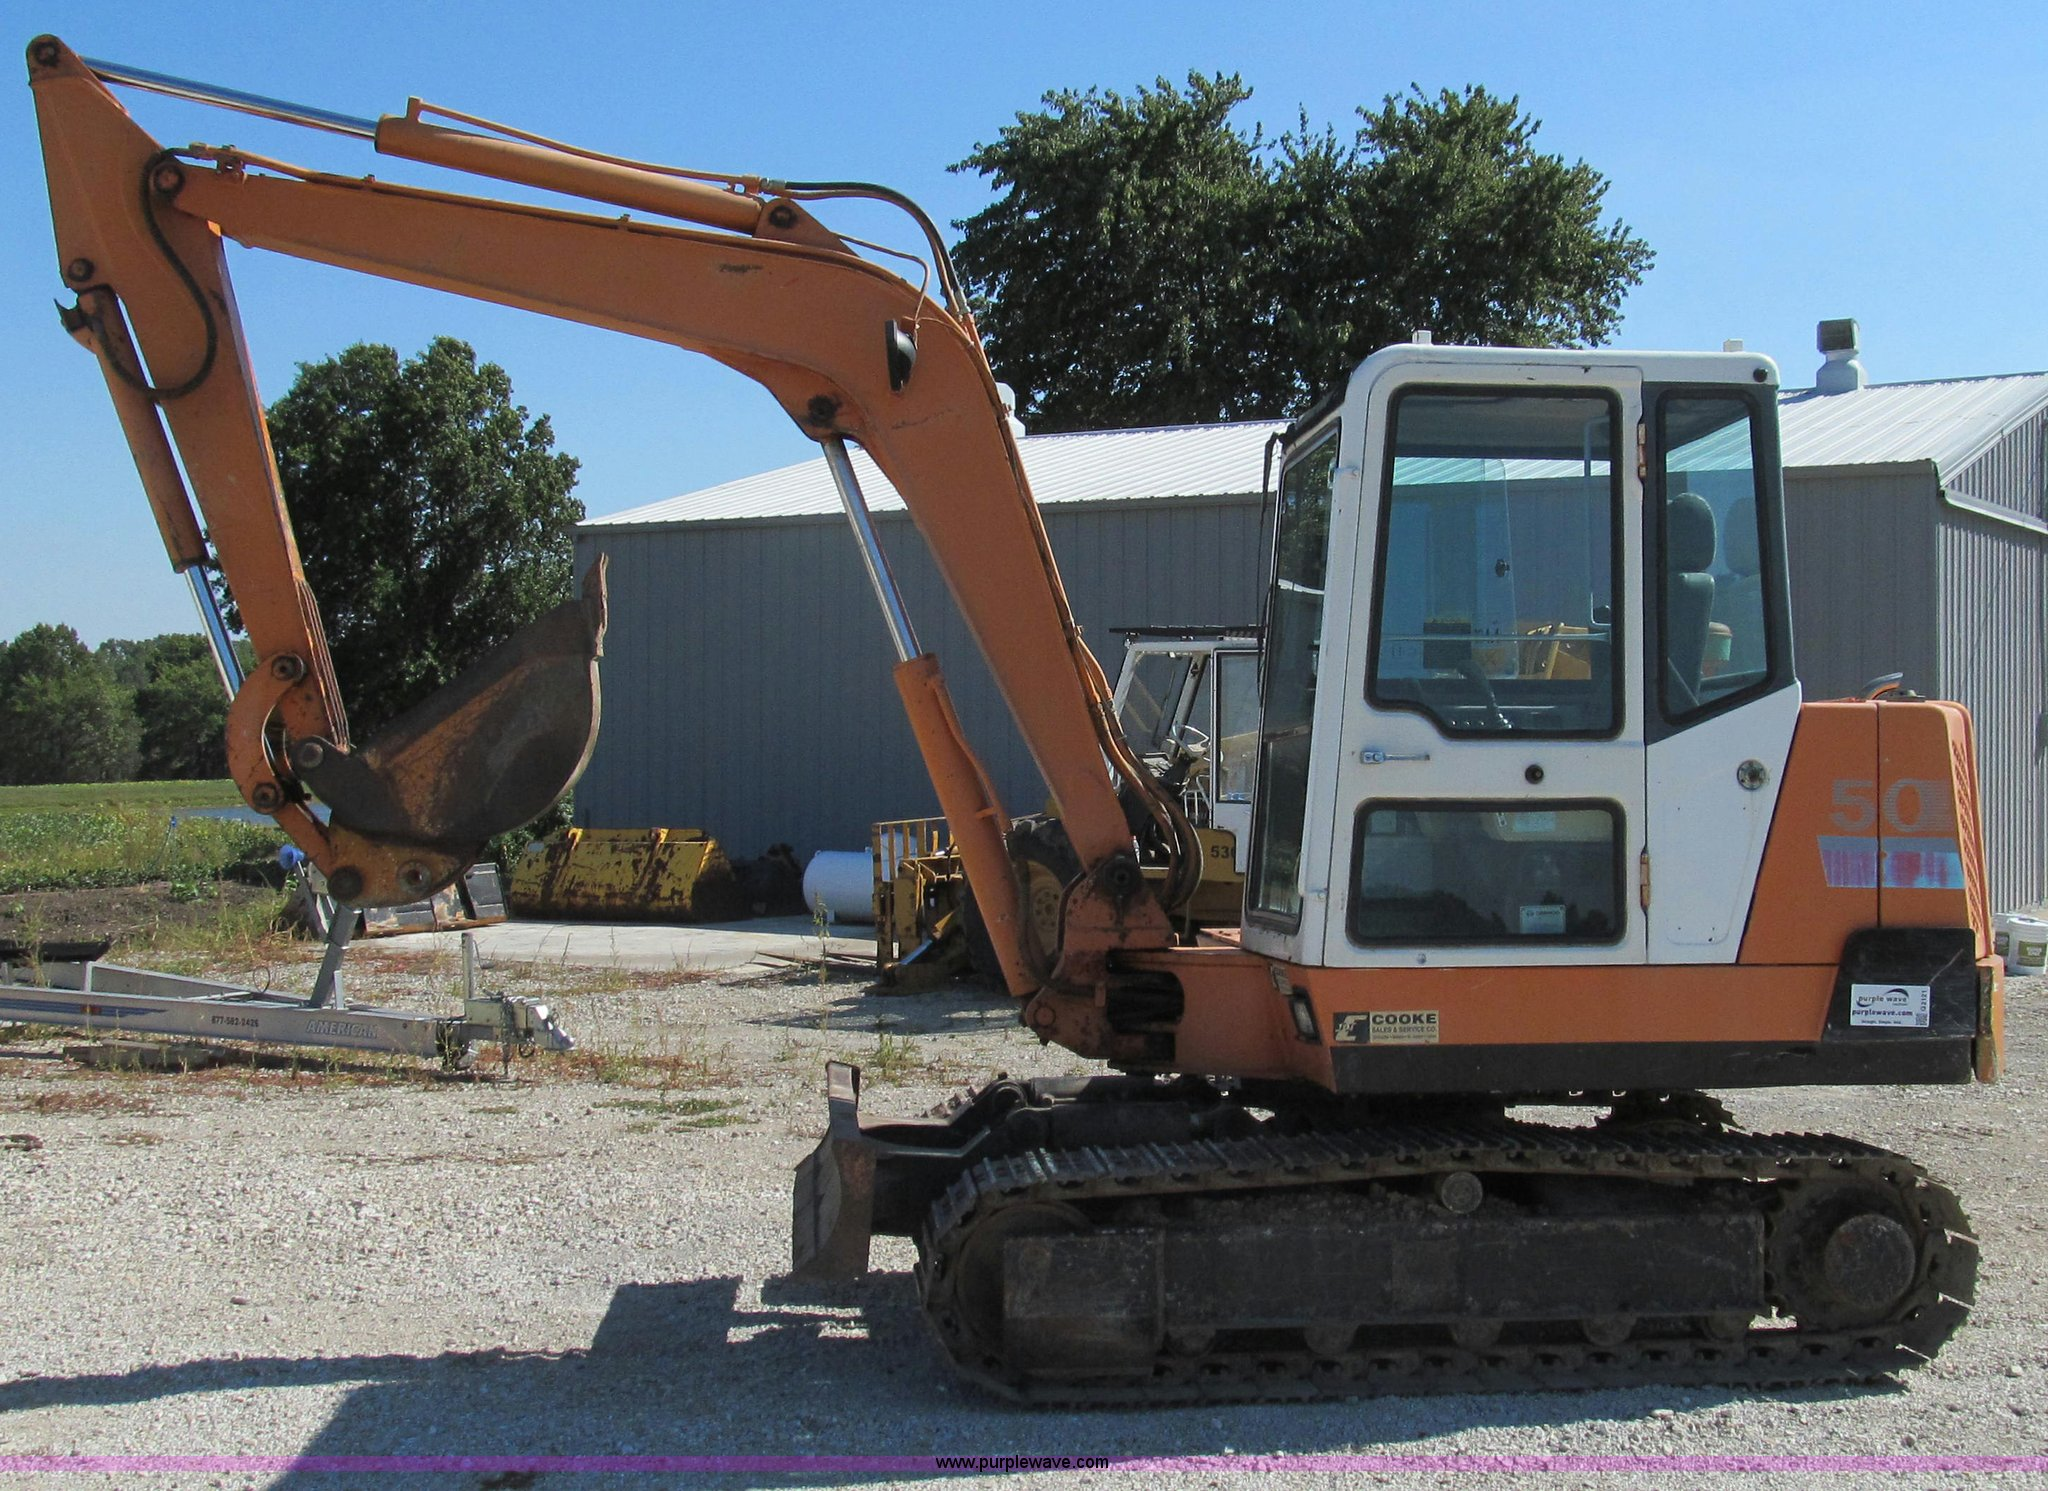 ... Daewoo DH50 mini excavator Full size in new window ...